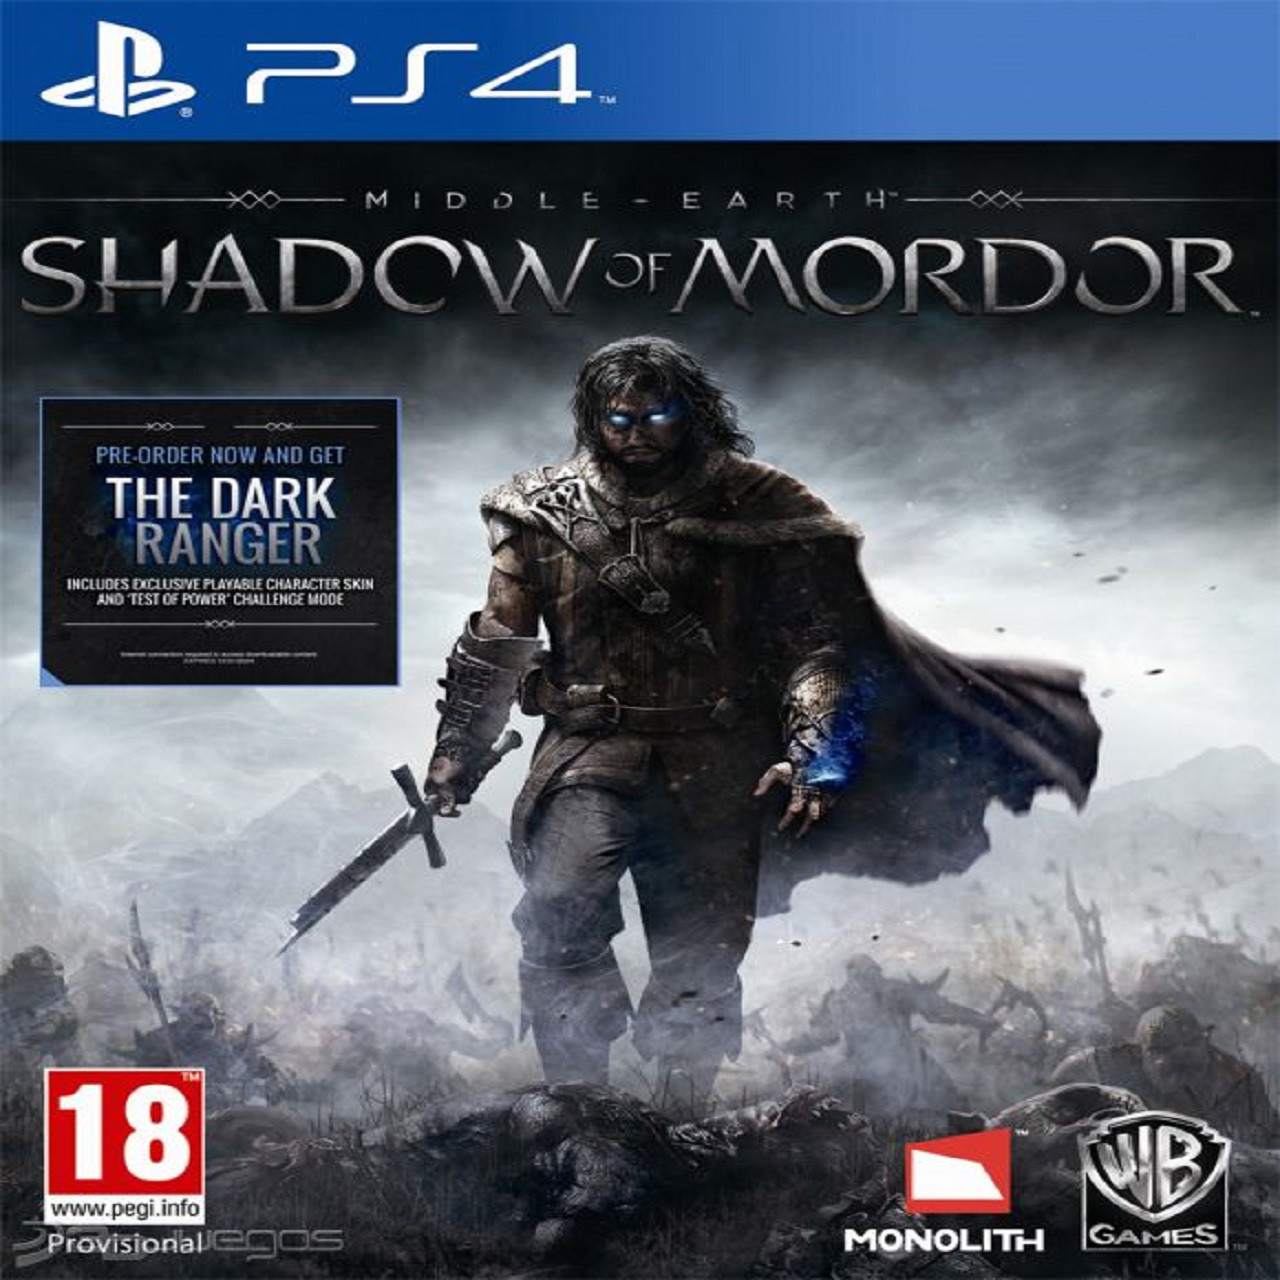 Middle-earth: Shadow of Mordor RUS PS4 (Б/В)